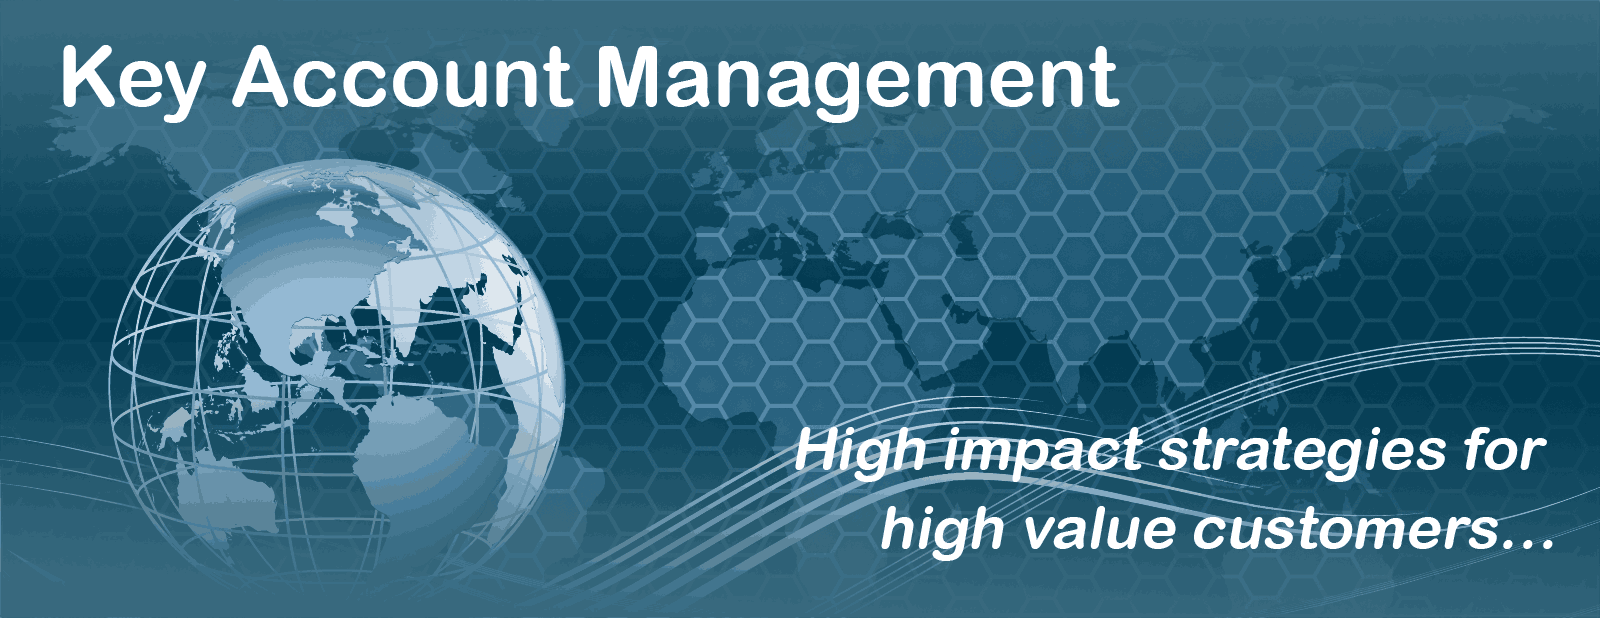 Key Account Management - High impact strategies for high value customers